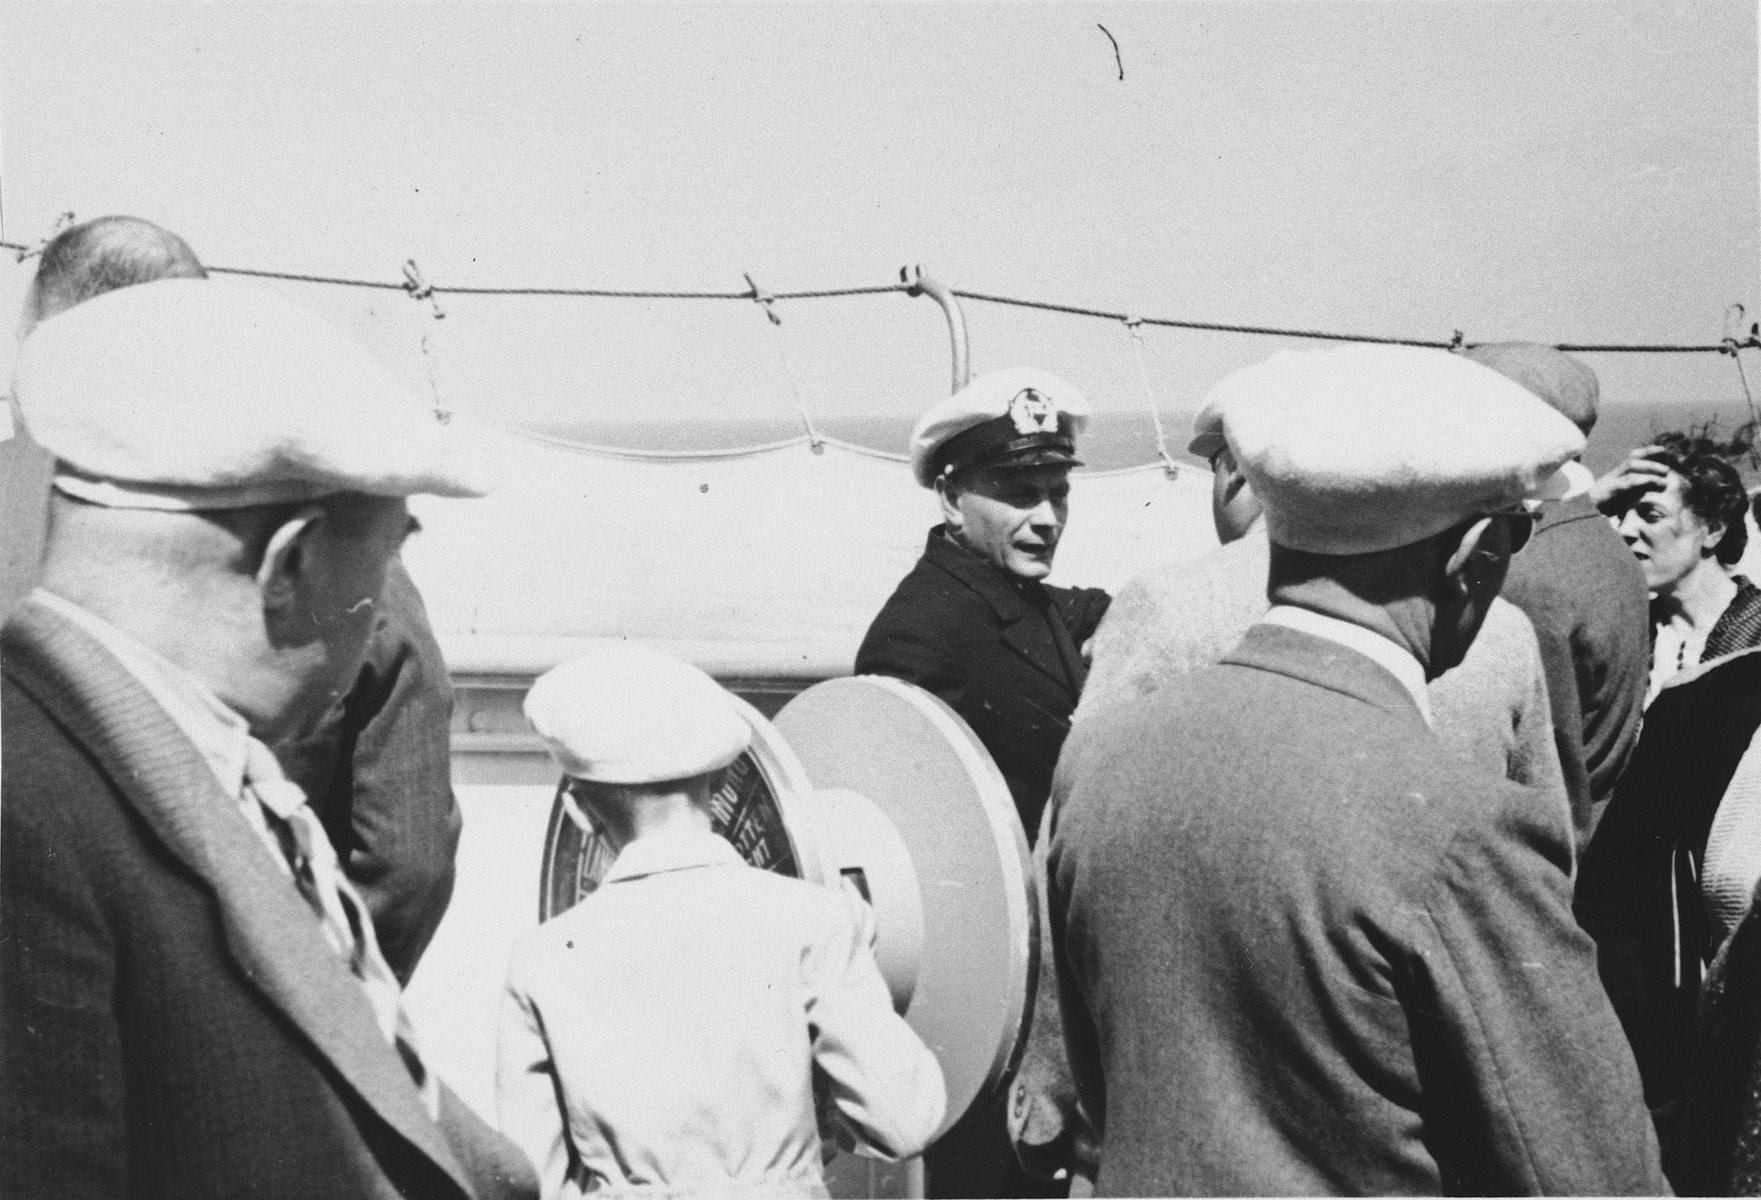 Passengers and crew on board the St. Louis.